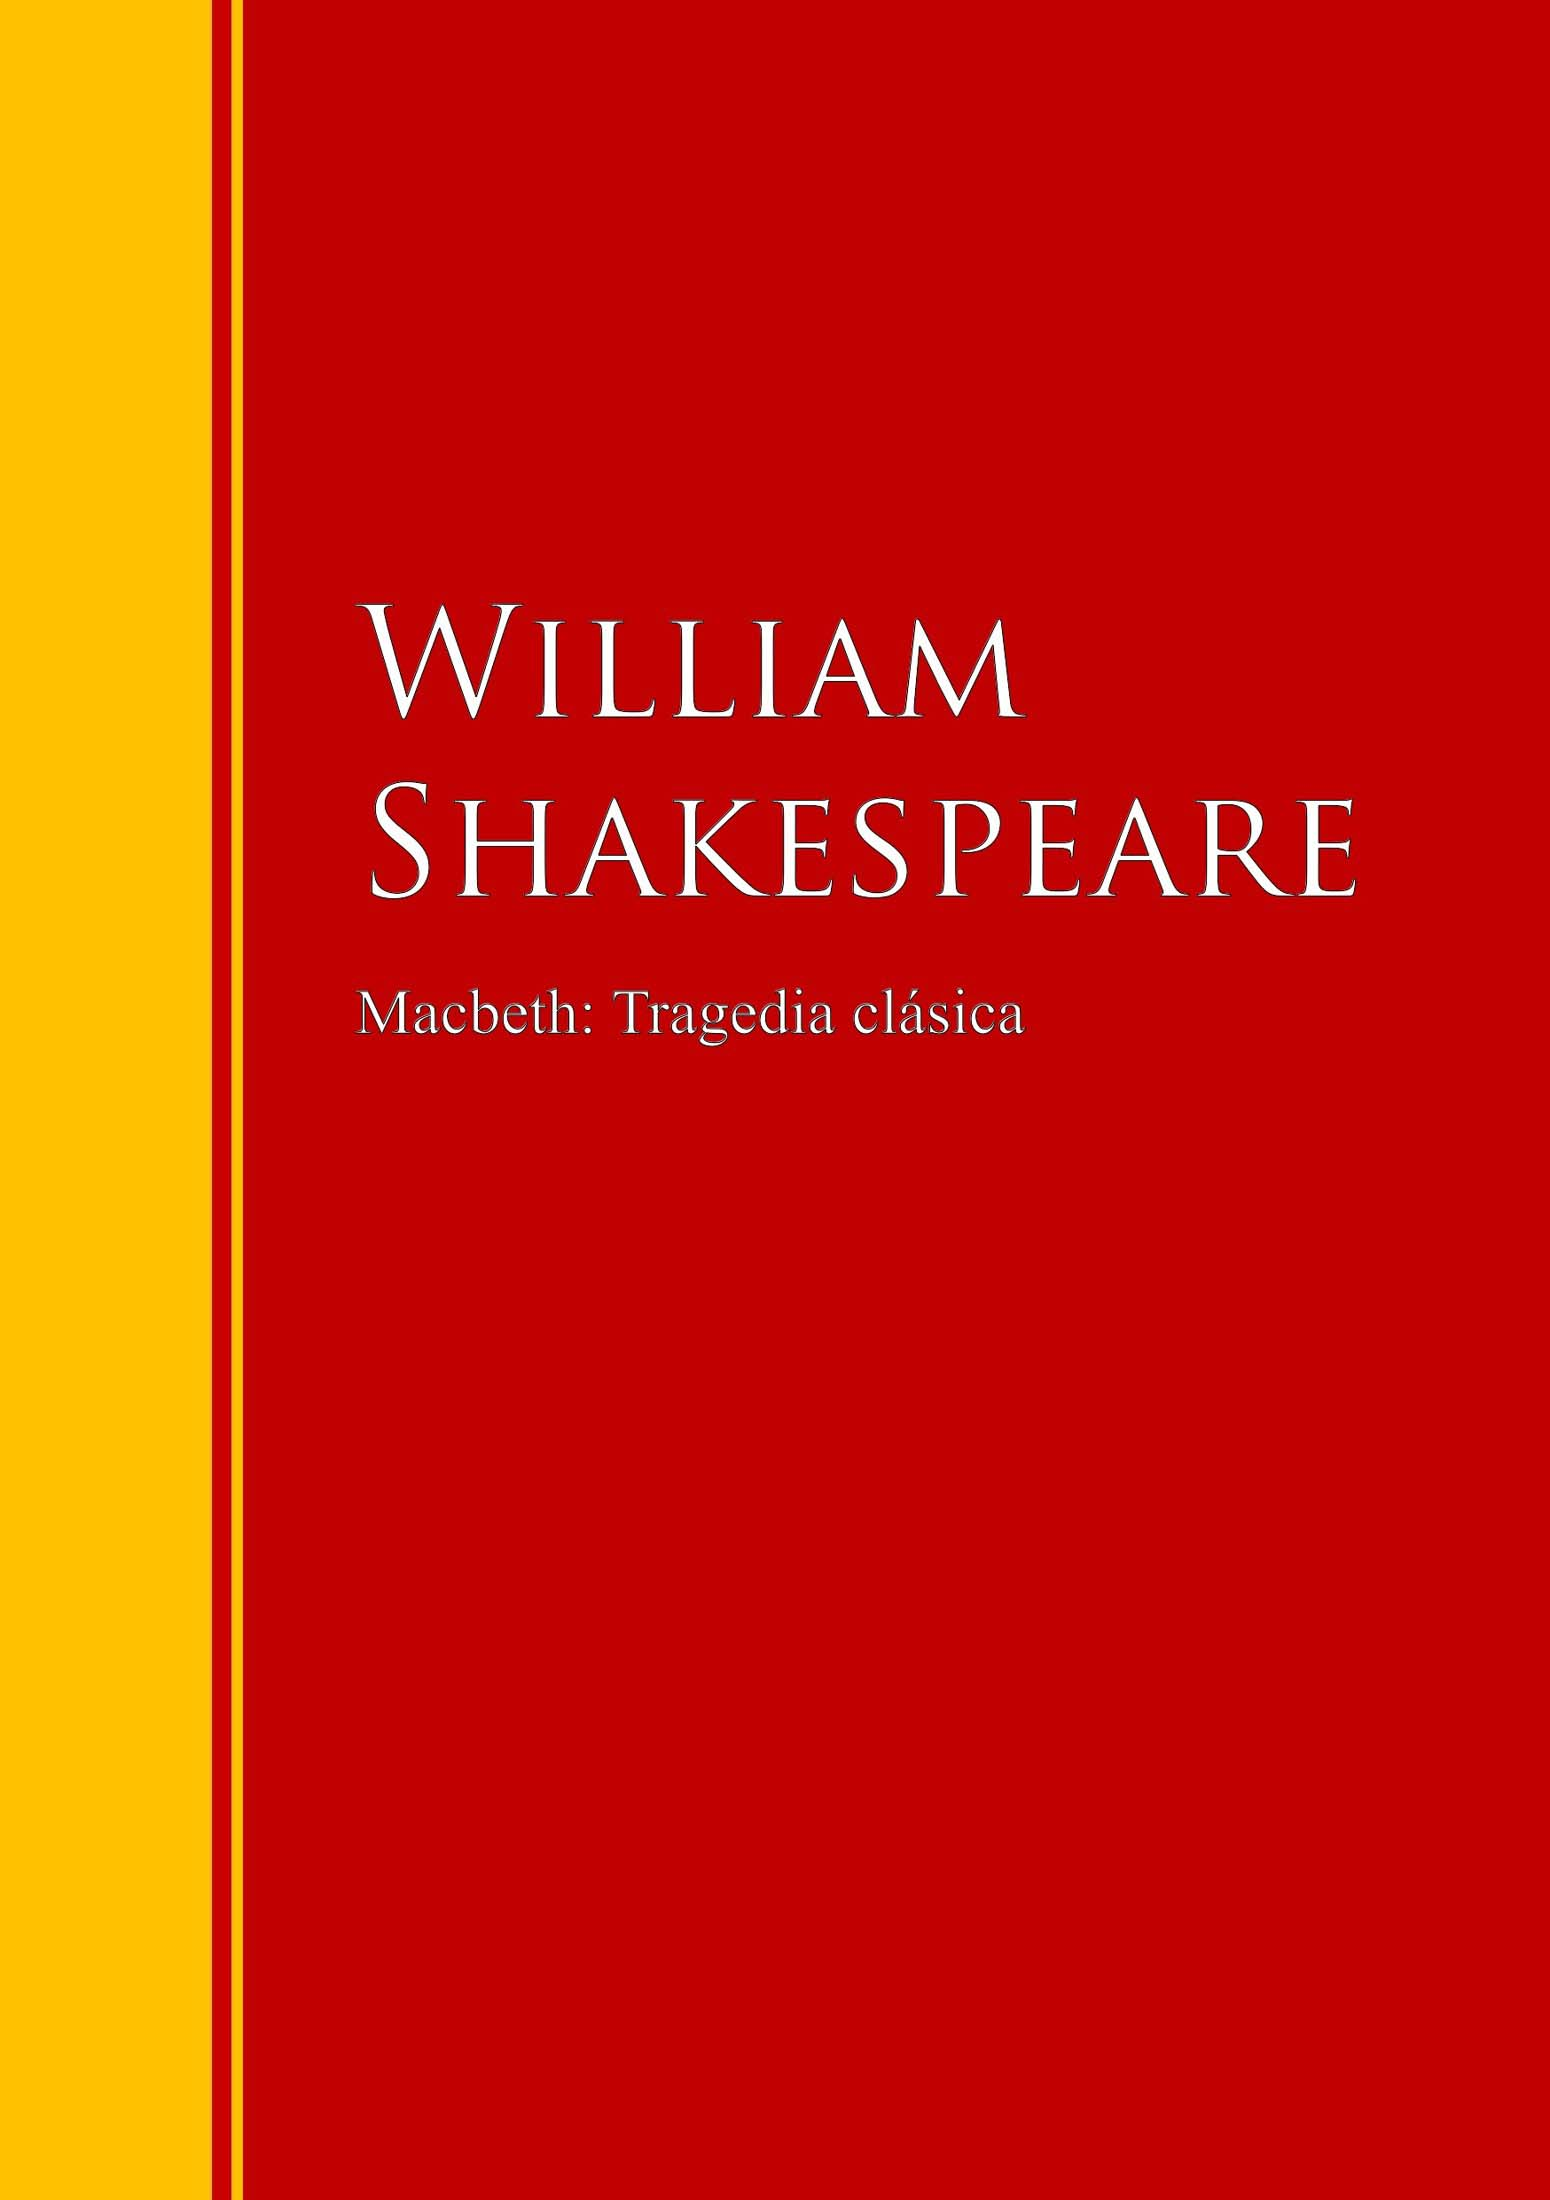 William Shakespeare Macbeth: Tragedia clásica shakespeare william macbeth